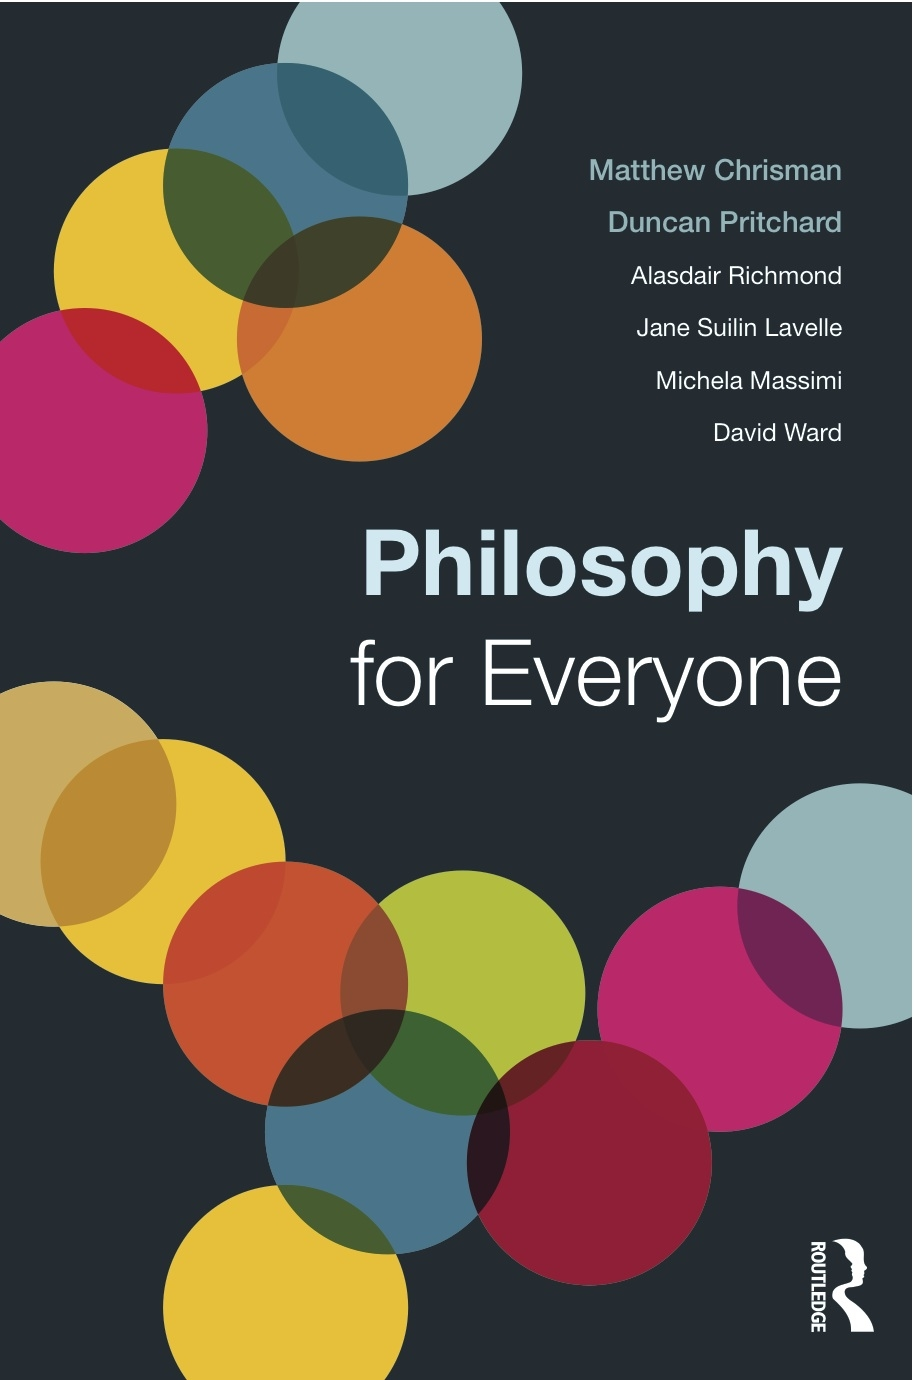 Cover of book entitled Philosophy for Everyone, listing authors Matthew Chrisman, Duncan Pritchard, Jane Suilin Lavelle, Michela Massimi, Alasdair Richmond and Dave Ward, and publisher Routledge